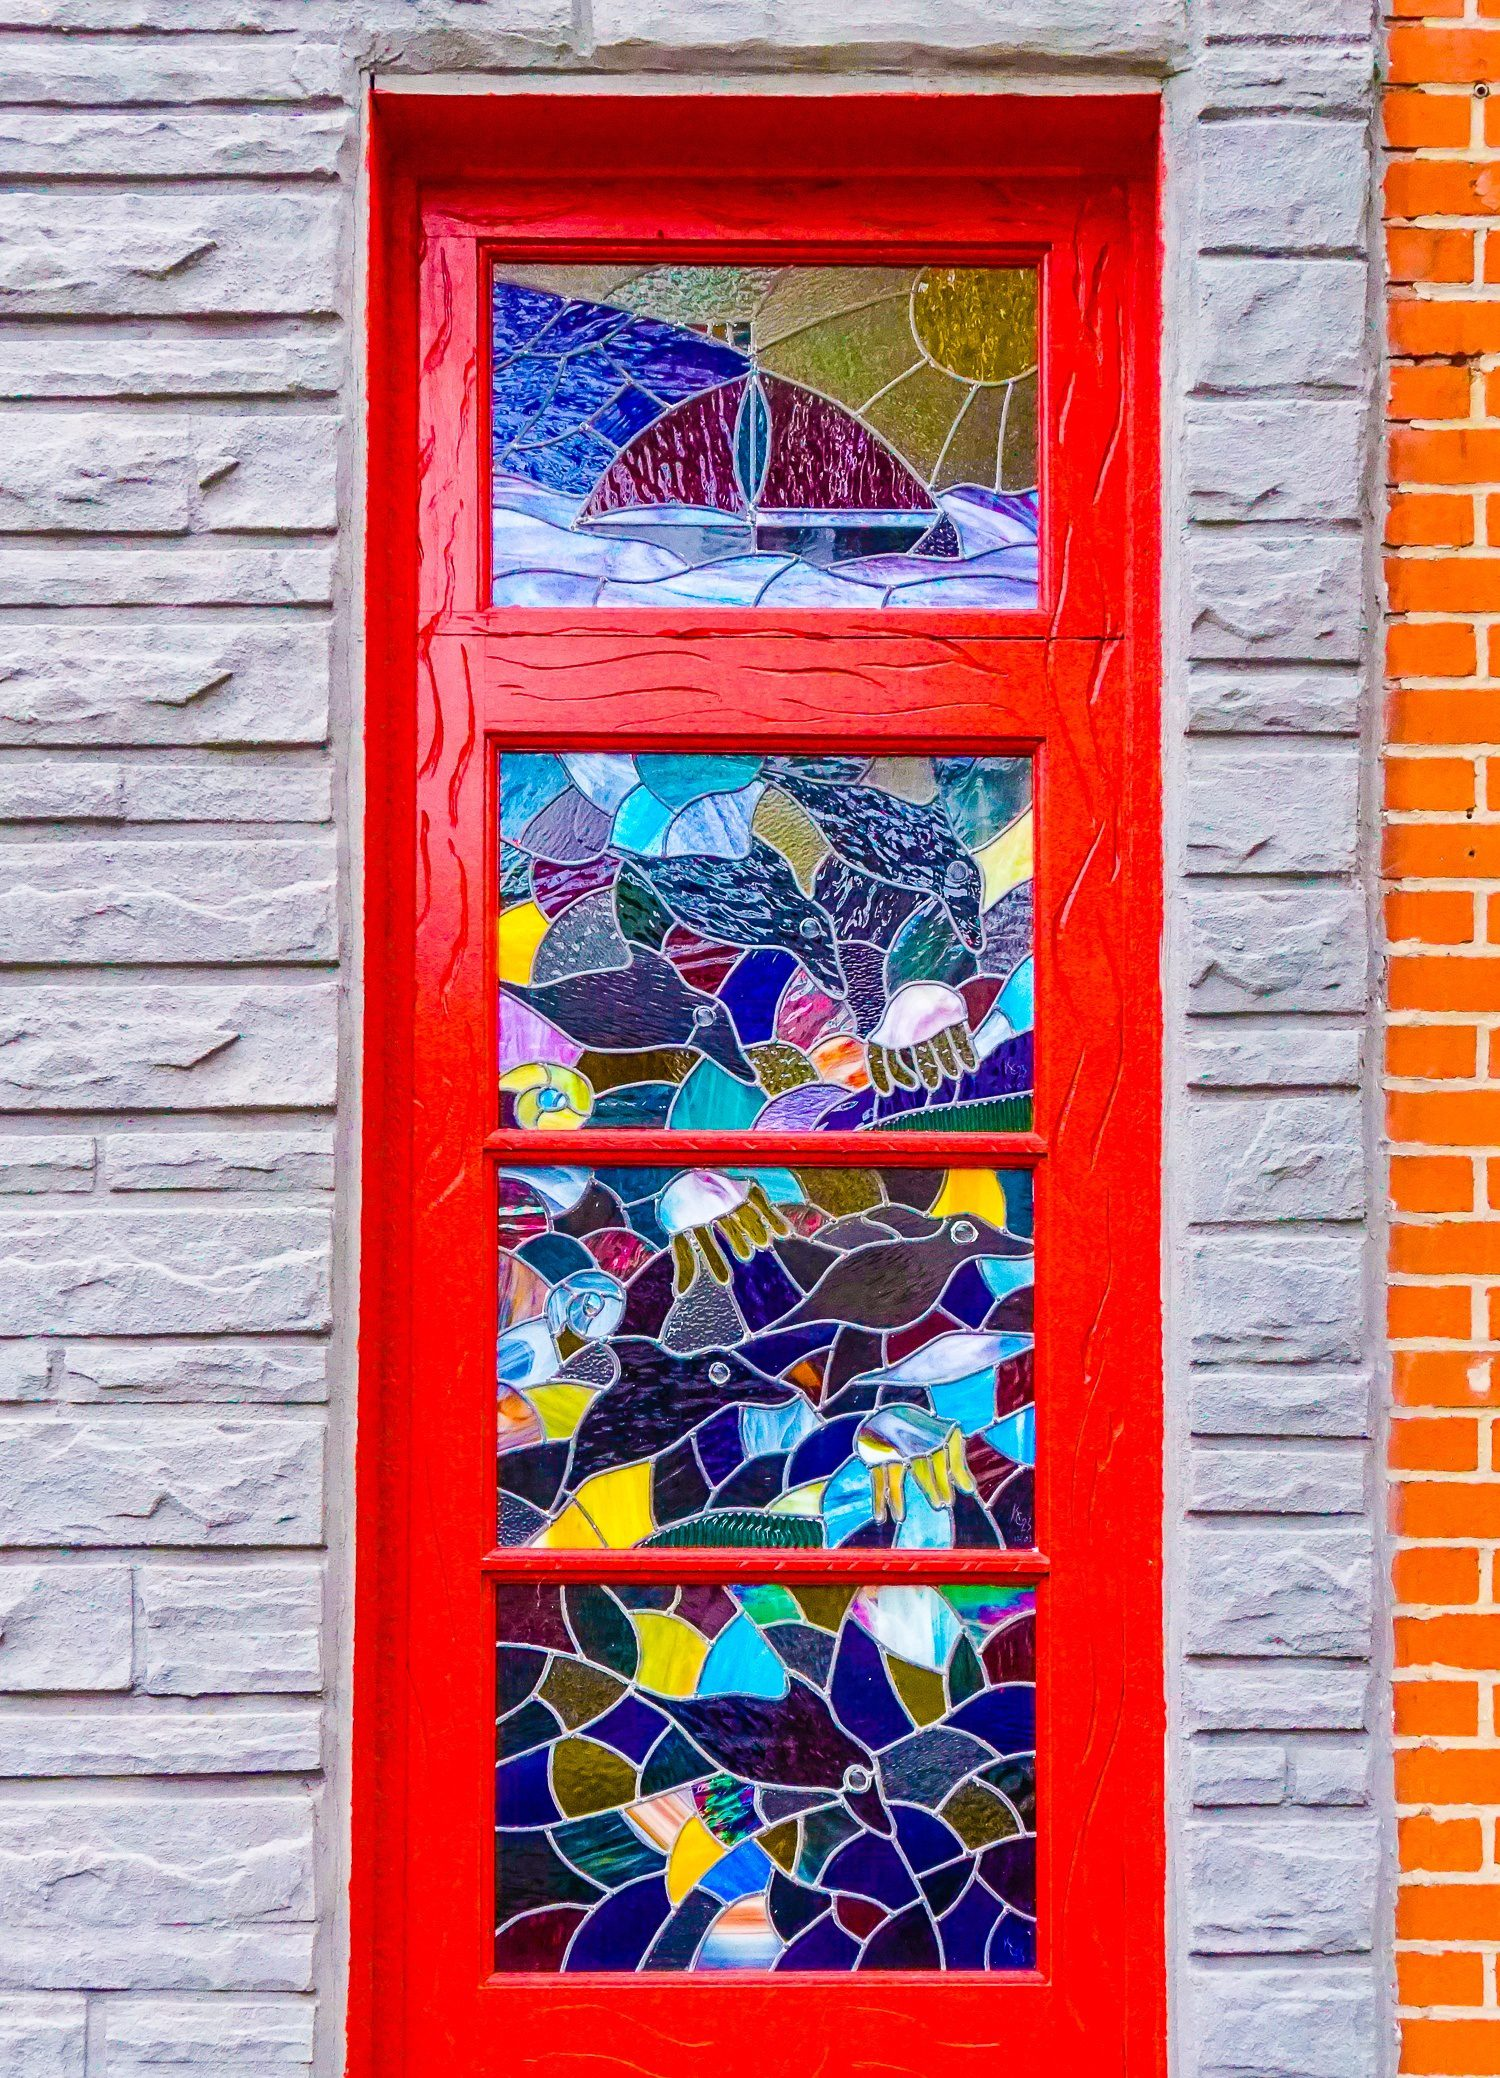 This beautiful red stained-glass door is a perfect example of why Fishtown, Philadelphia has some of the best public art in Philly!